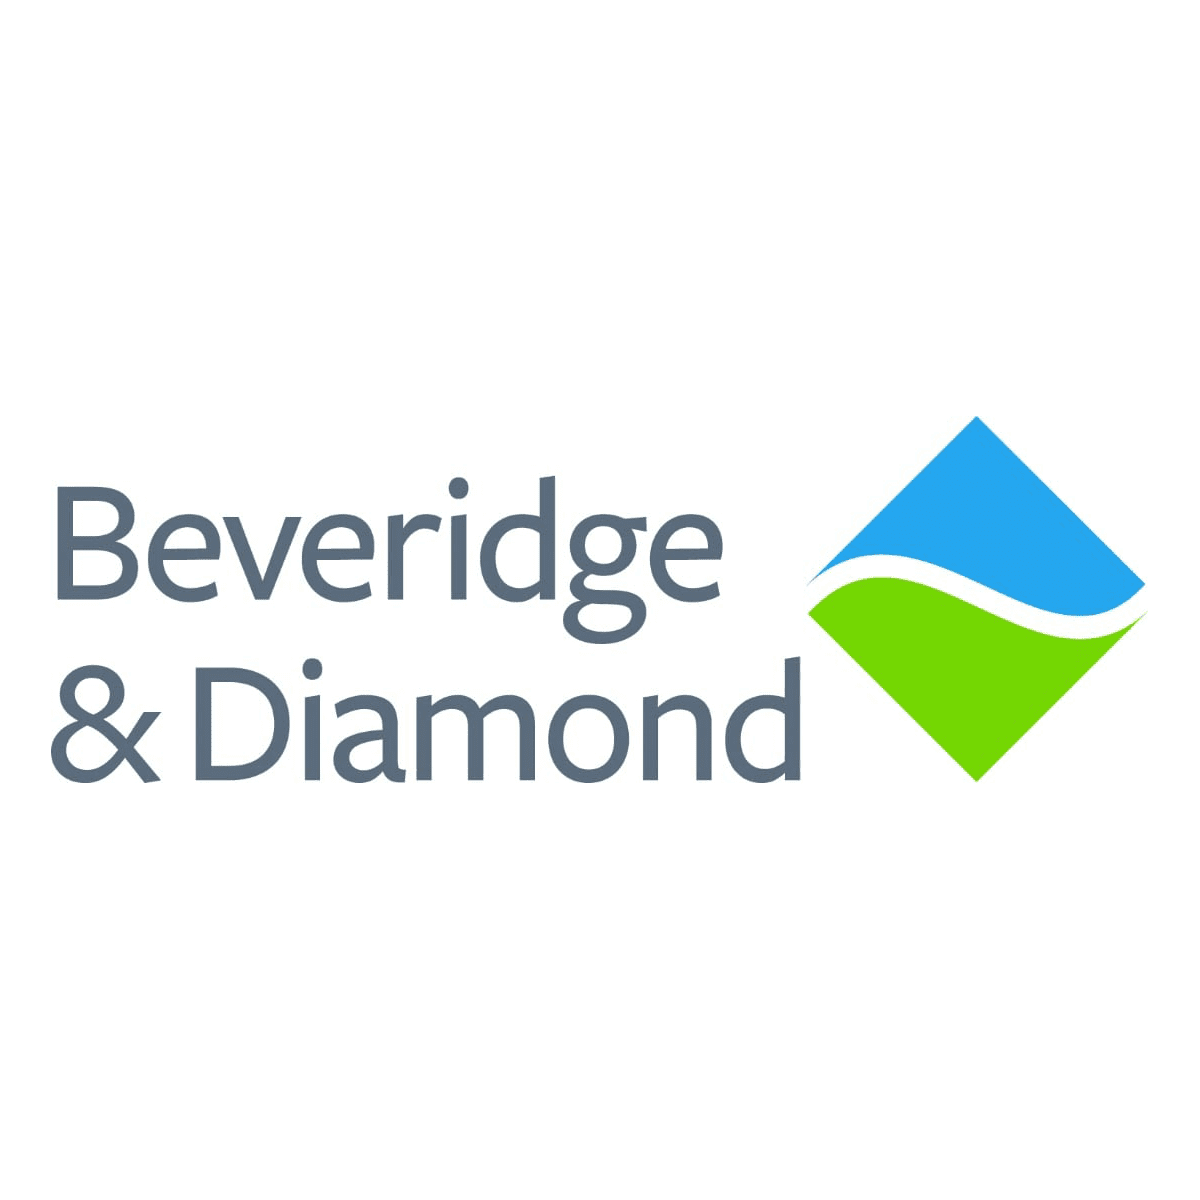 Beveridge & Diamond